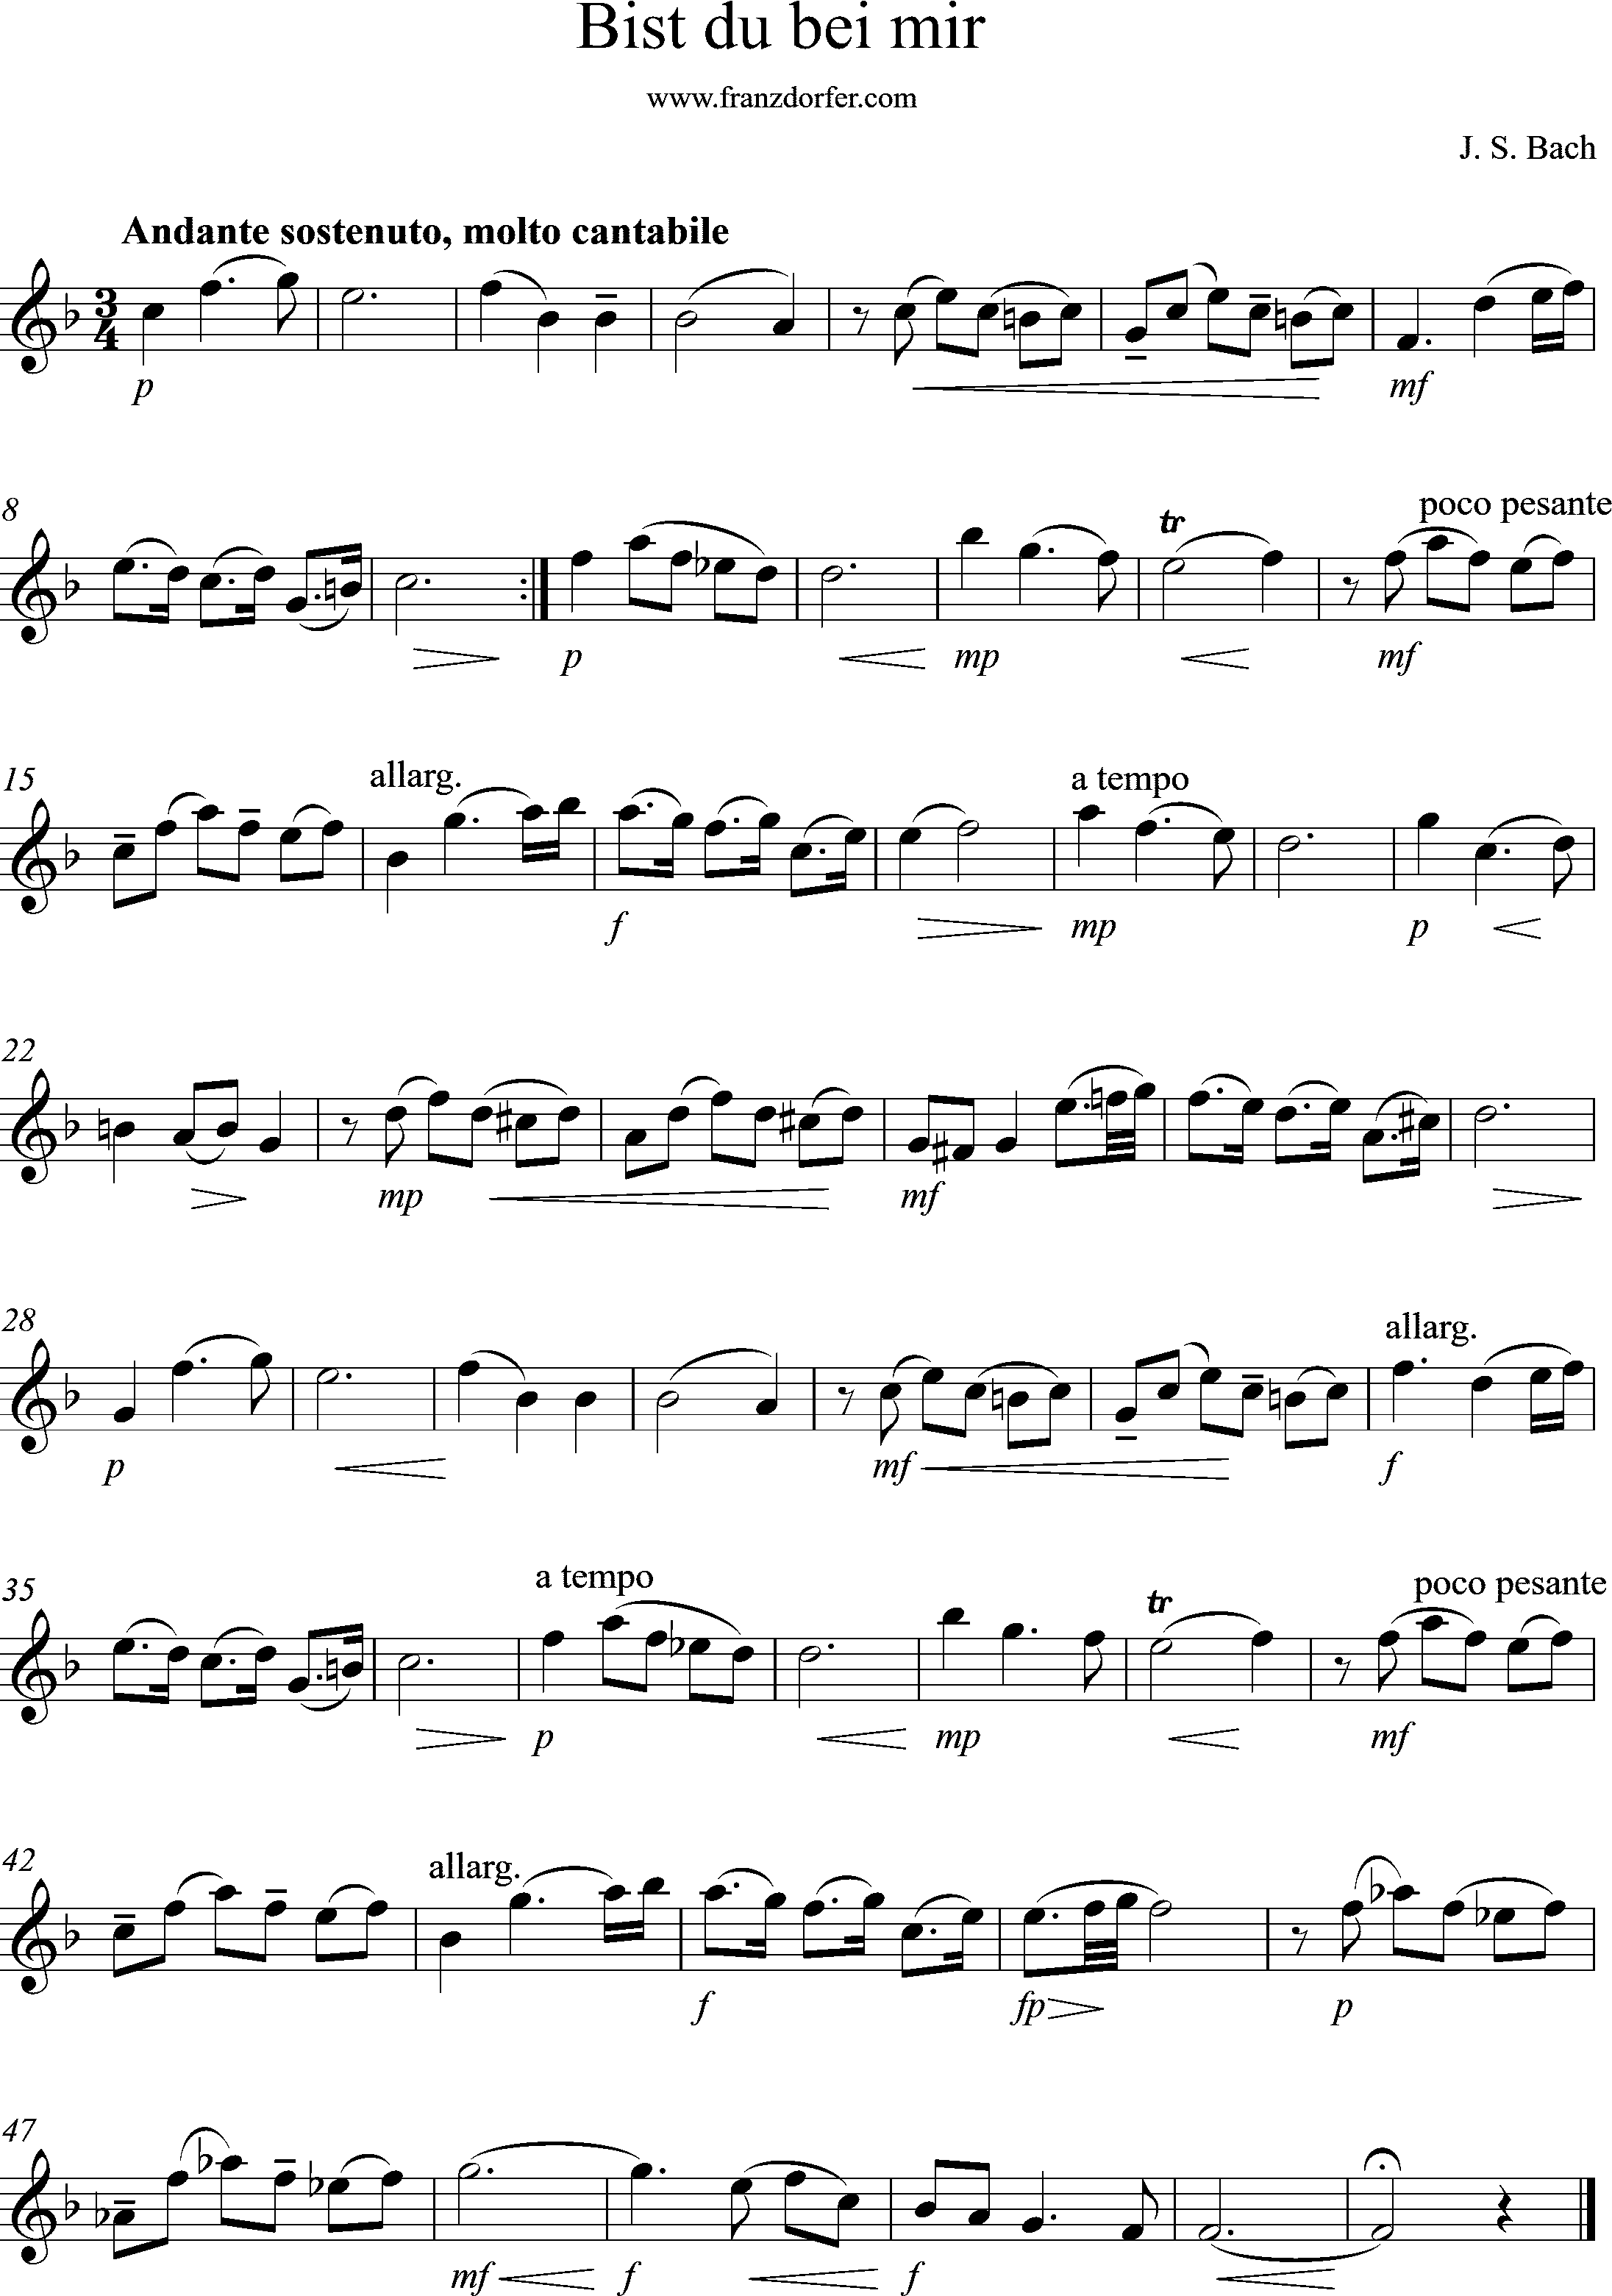 sheetmusic BWV508, Bach